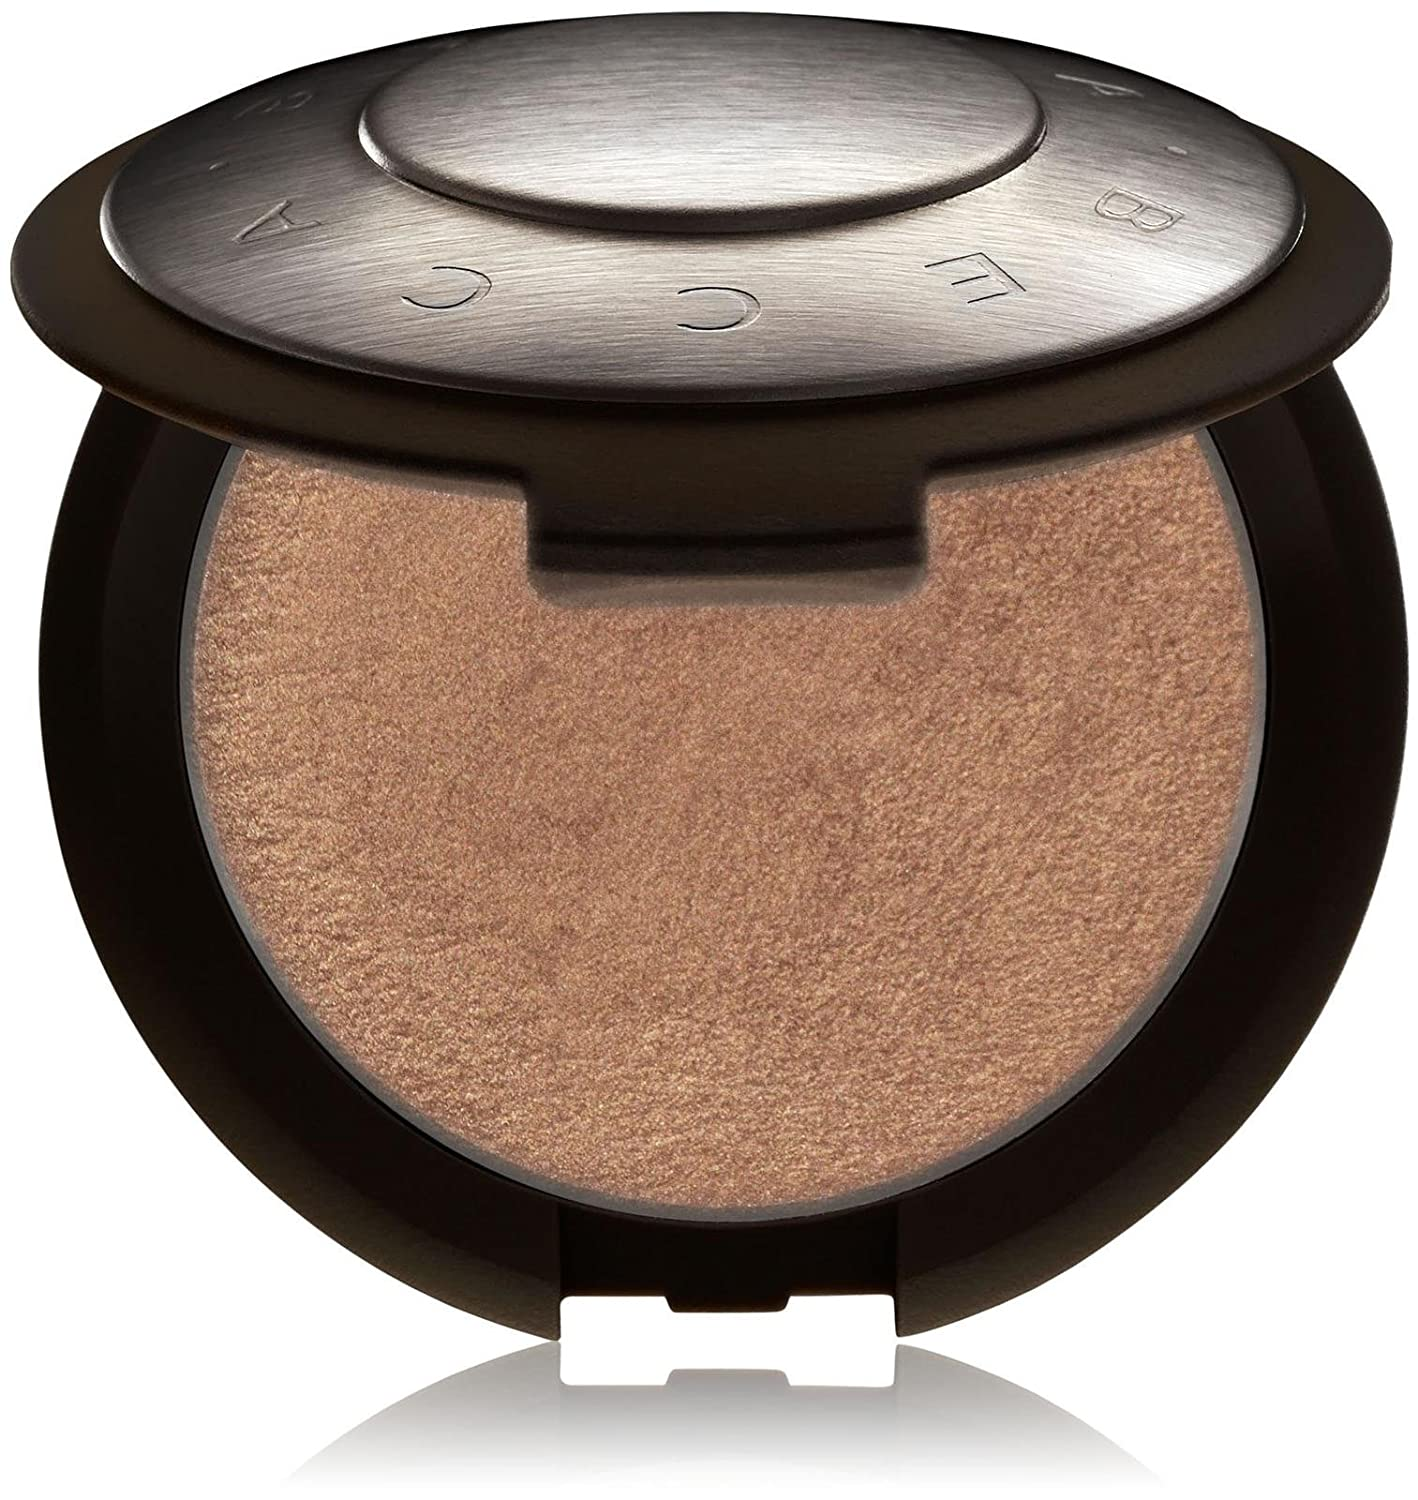 BECCA - Shimmering Skin Perfector Pressed High Lighter, Opal